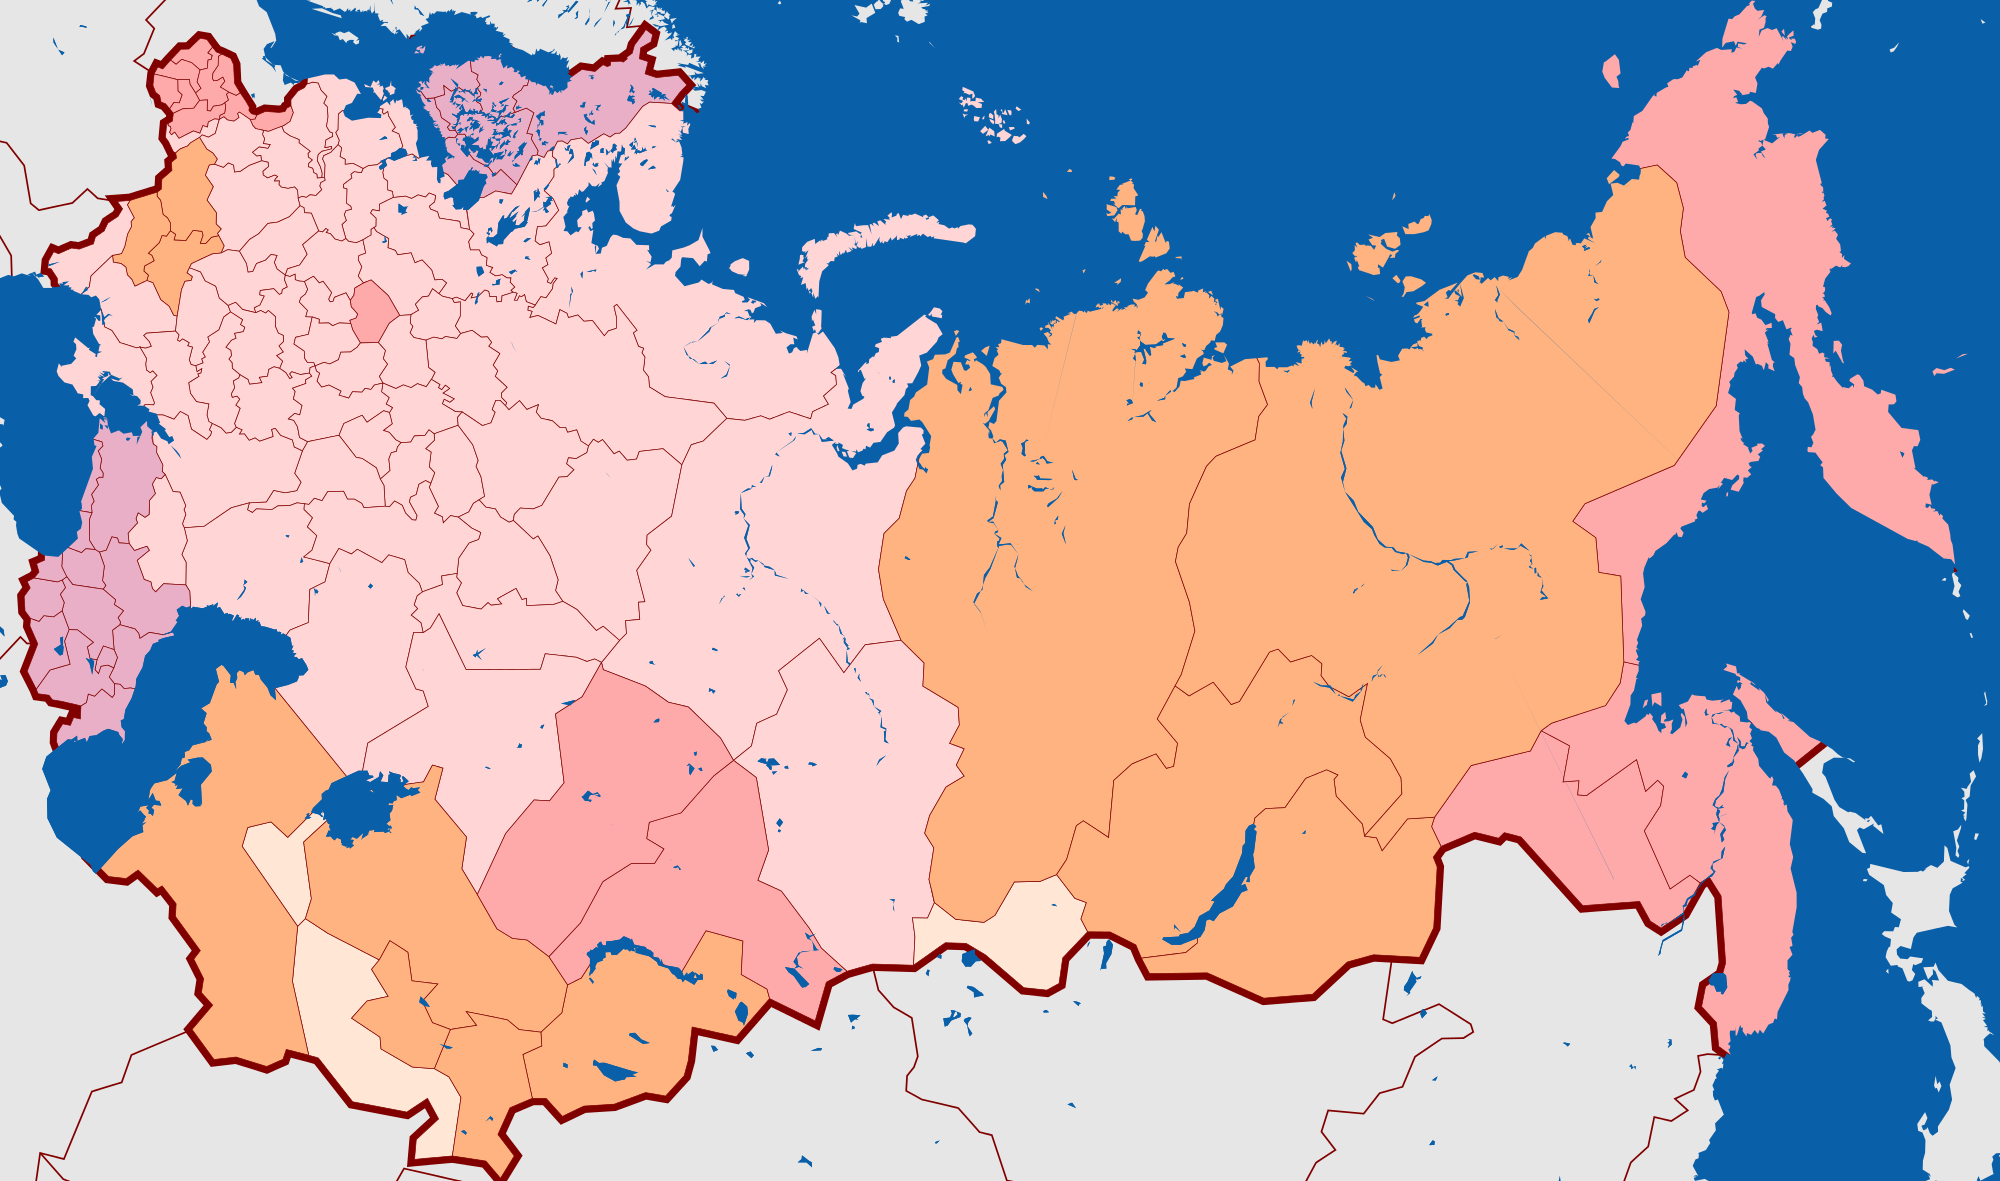 Of the russian empire included